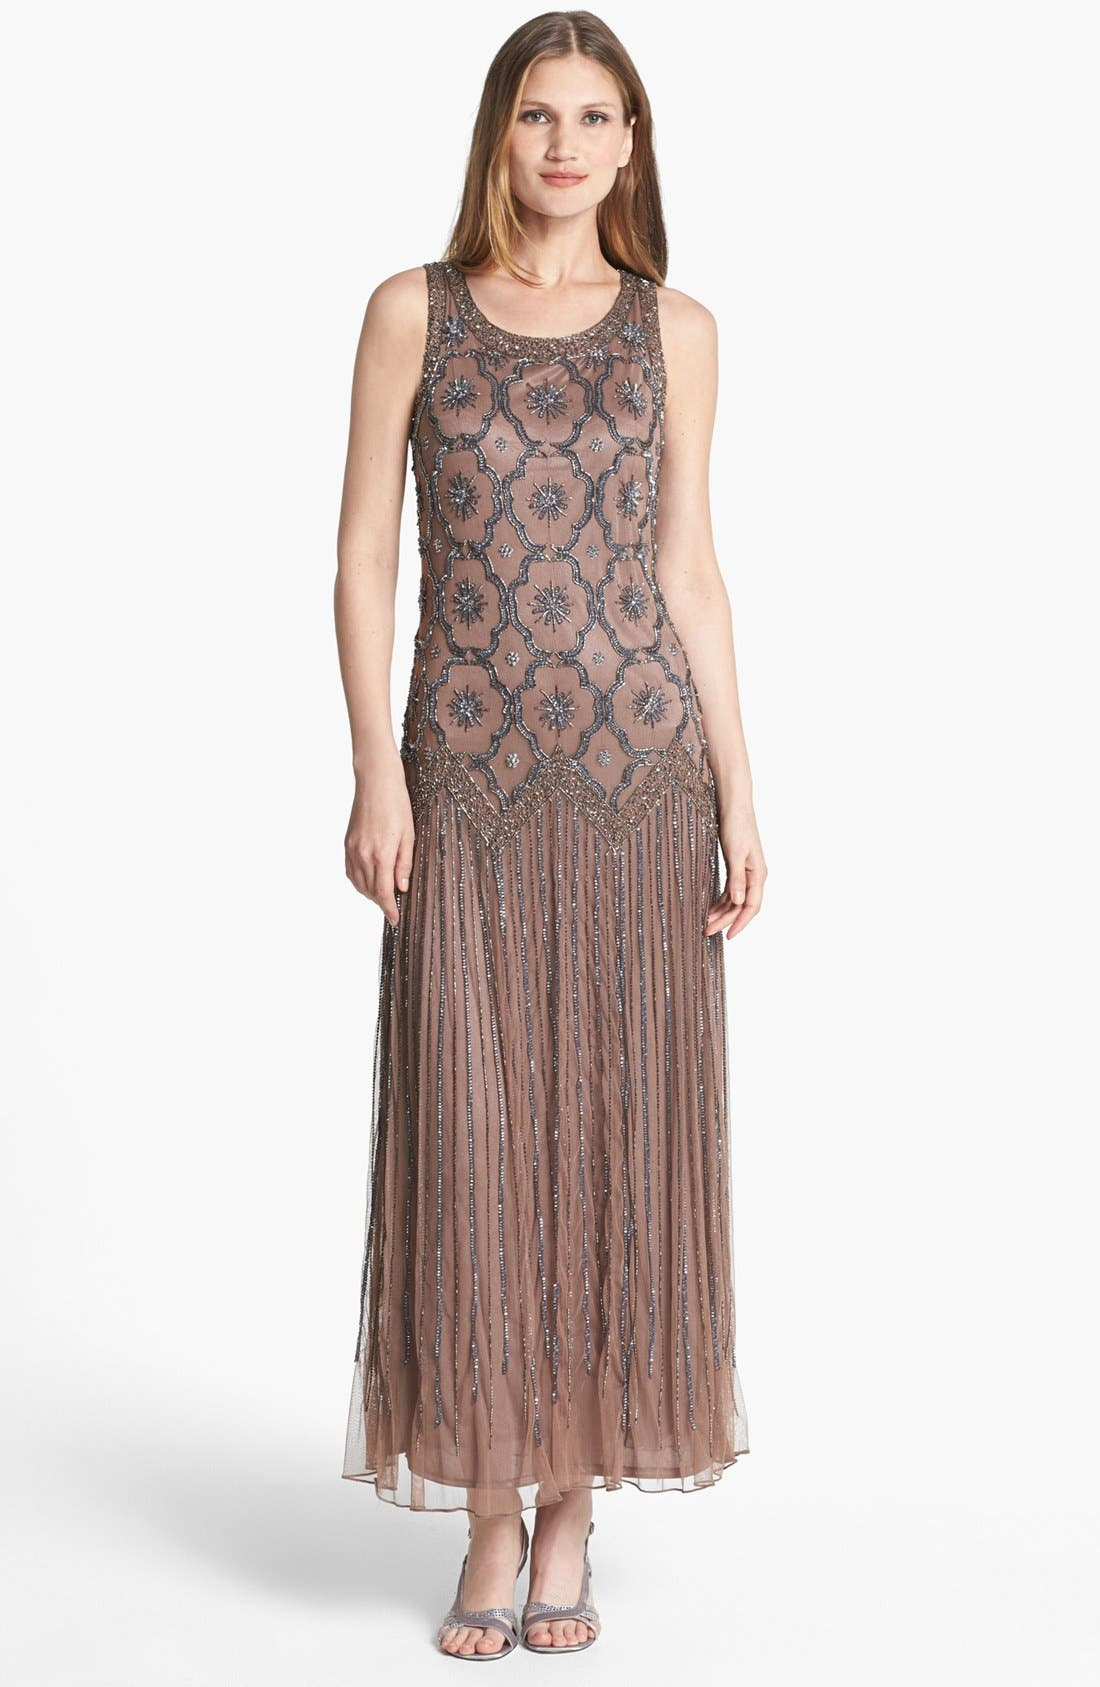 Main Image - Pisarro Nights Embellished Drop Waist Midi Dress